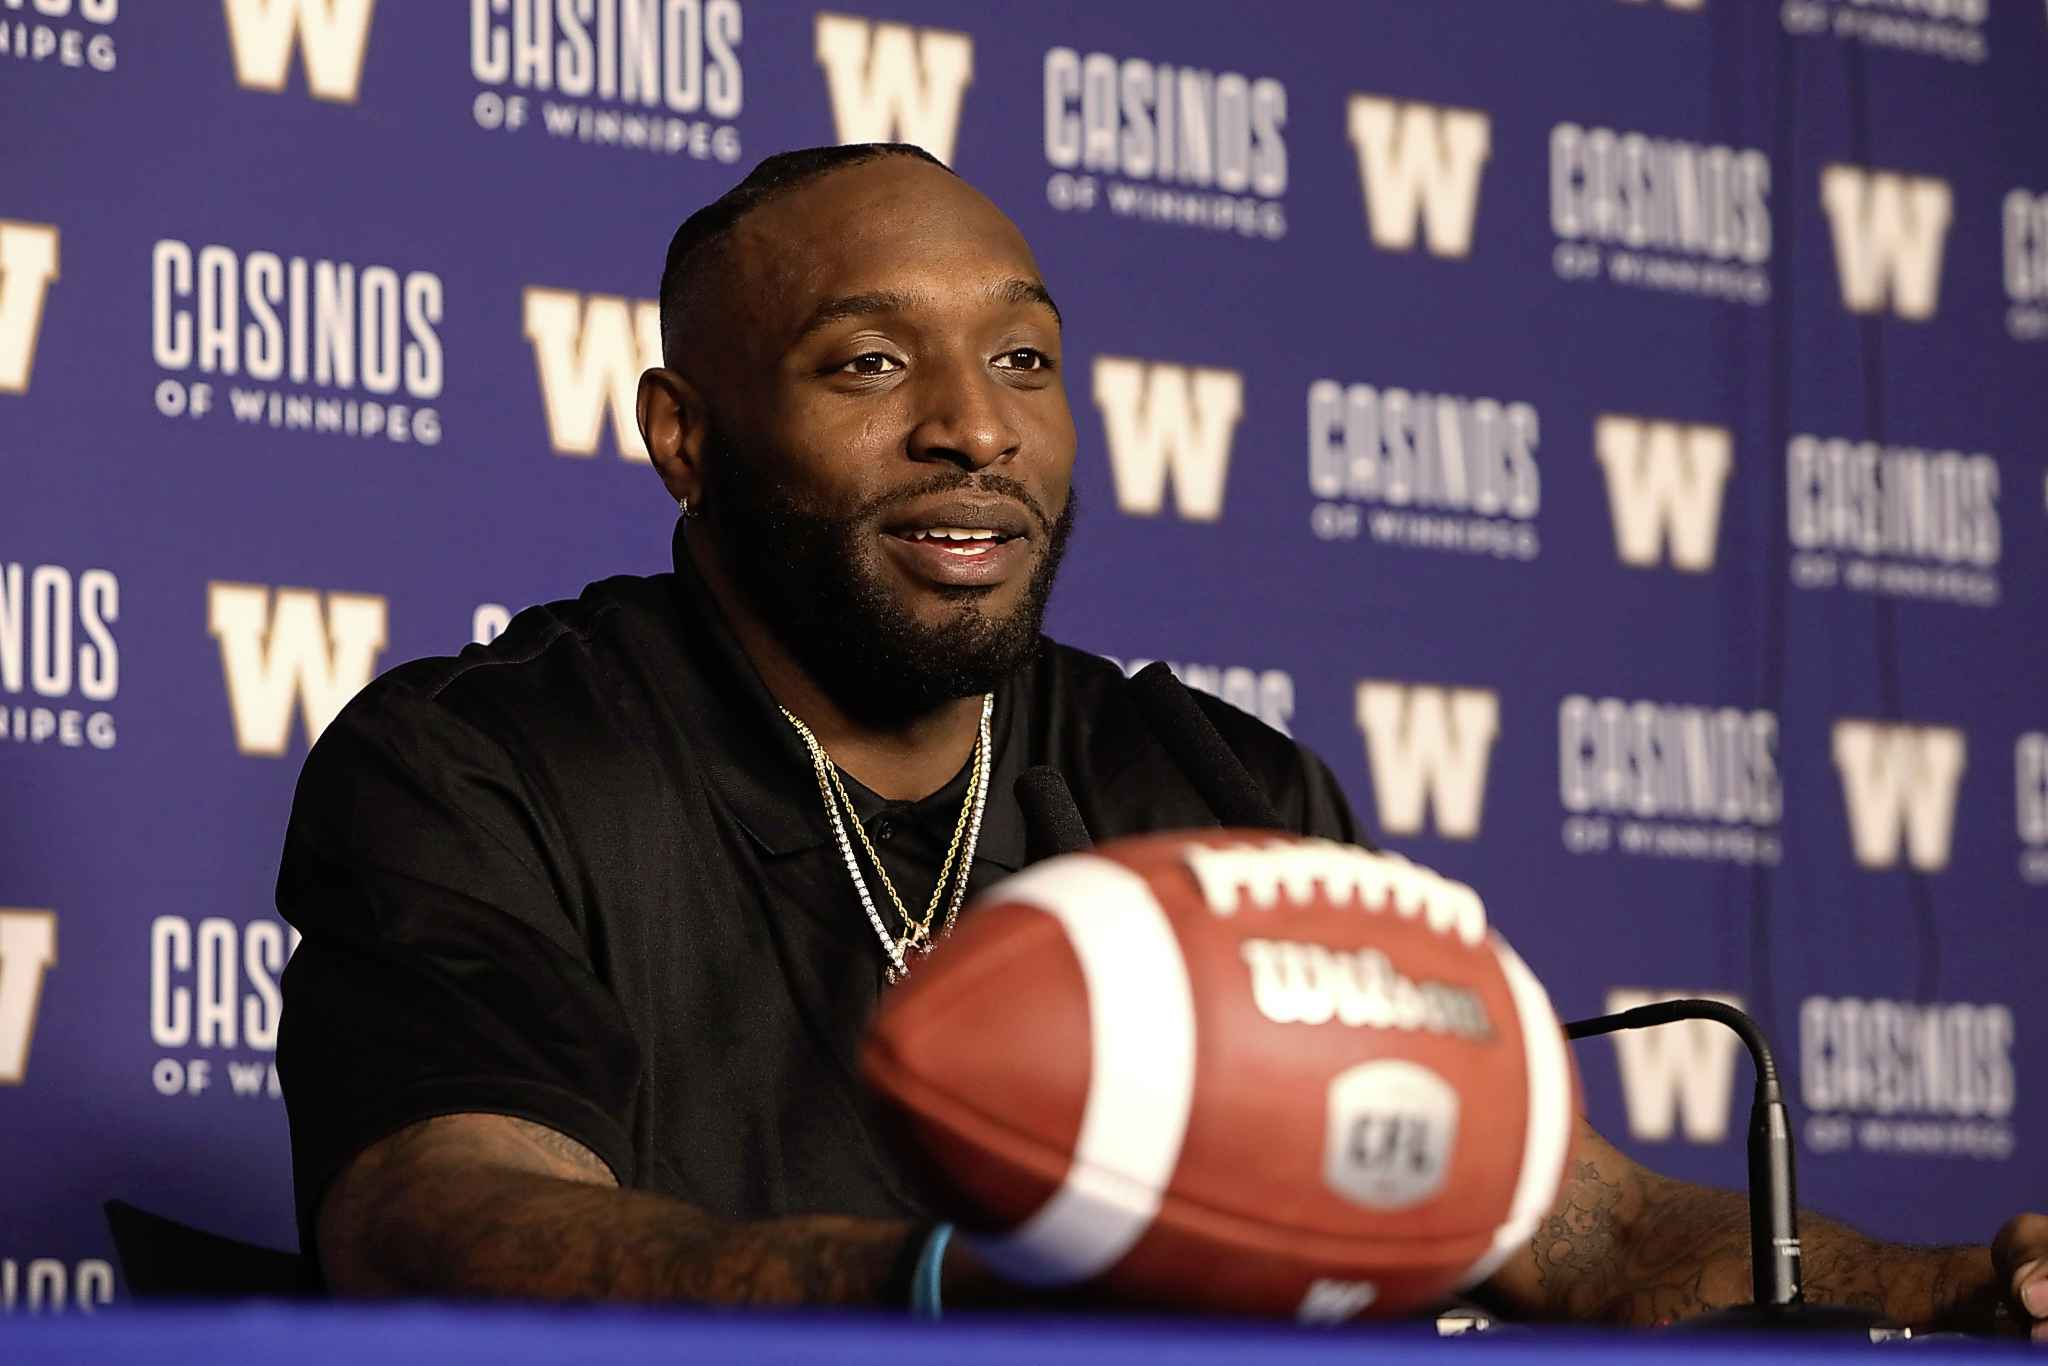 The Bombers signing of defensive lineman Willie Jefferson may ease the pain from the departure of linebacker Jovan Santos-Knox and safety Taylor Loffler.